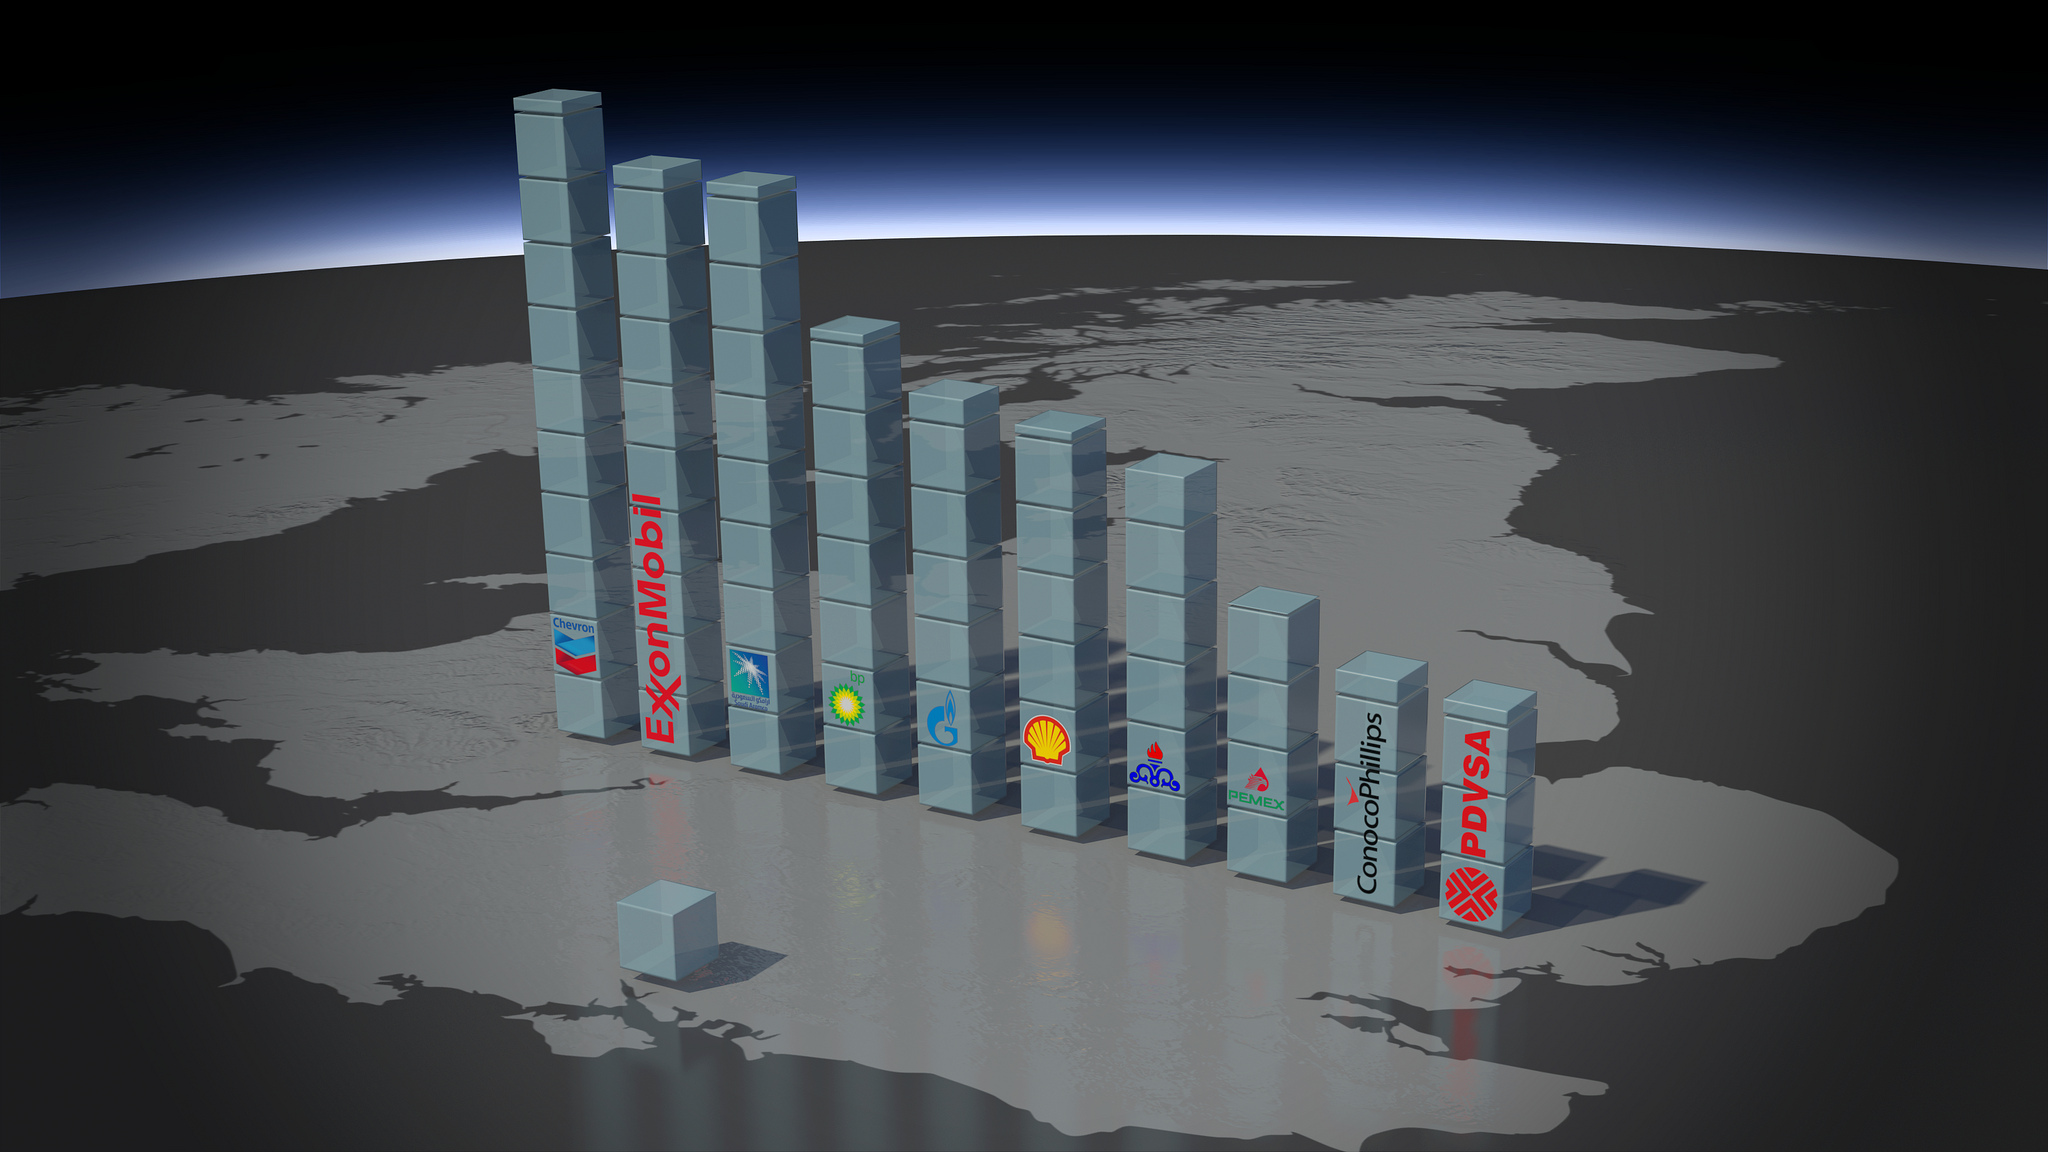 Image from Carbon Majors project. Actual volume of CO 2 emissions attributable to the top 10 investor-owned and state-owned fossil fuel companies, shown in units of 5 billion metric tons.